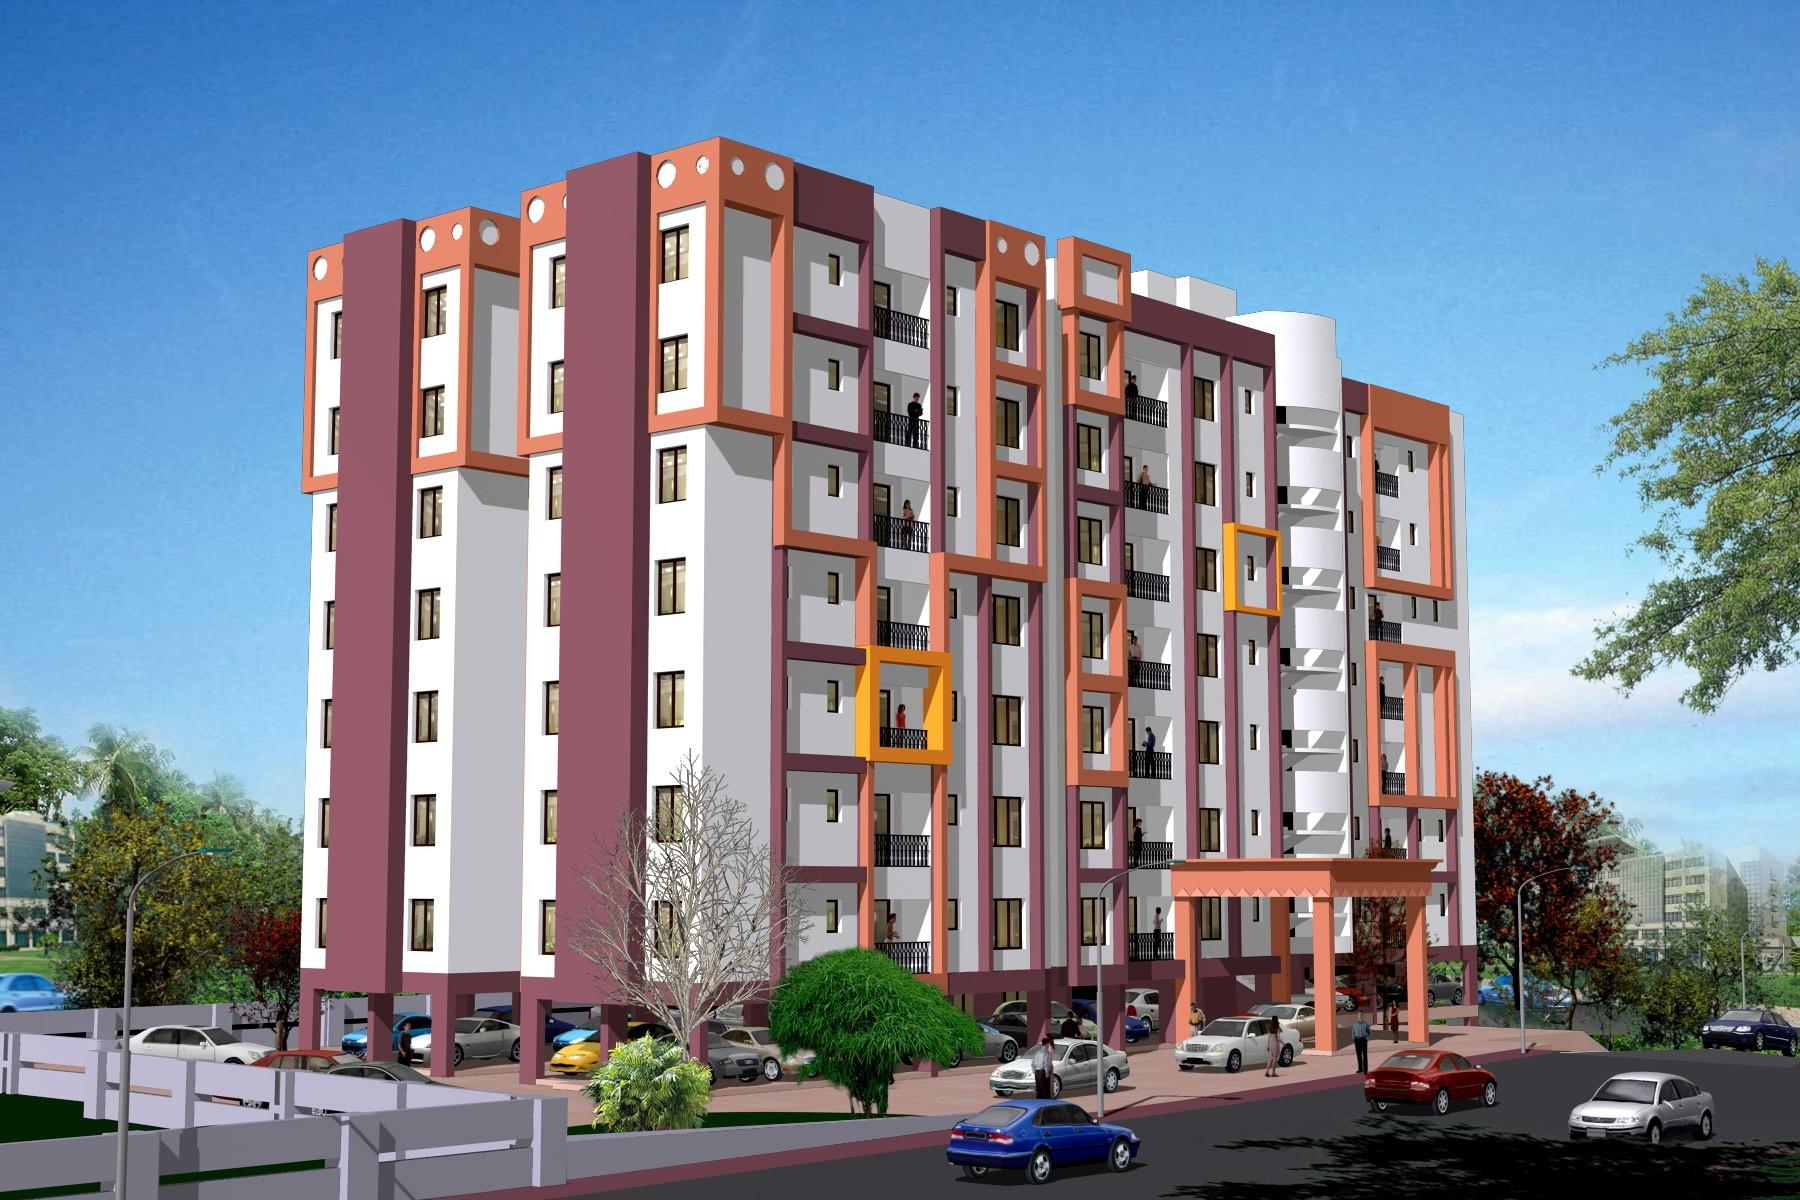 Njk vijay kakkanad by n j k builders pvt ltd in kochi for Apartment design development pvt ltd